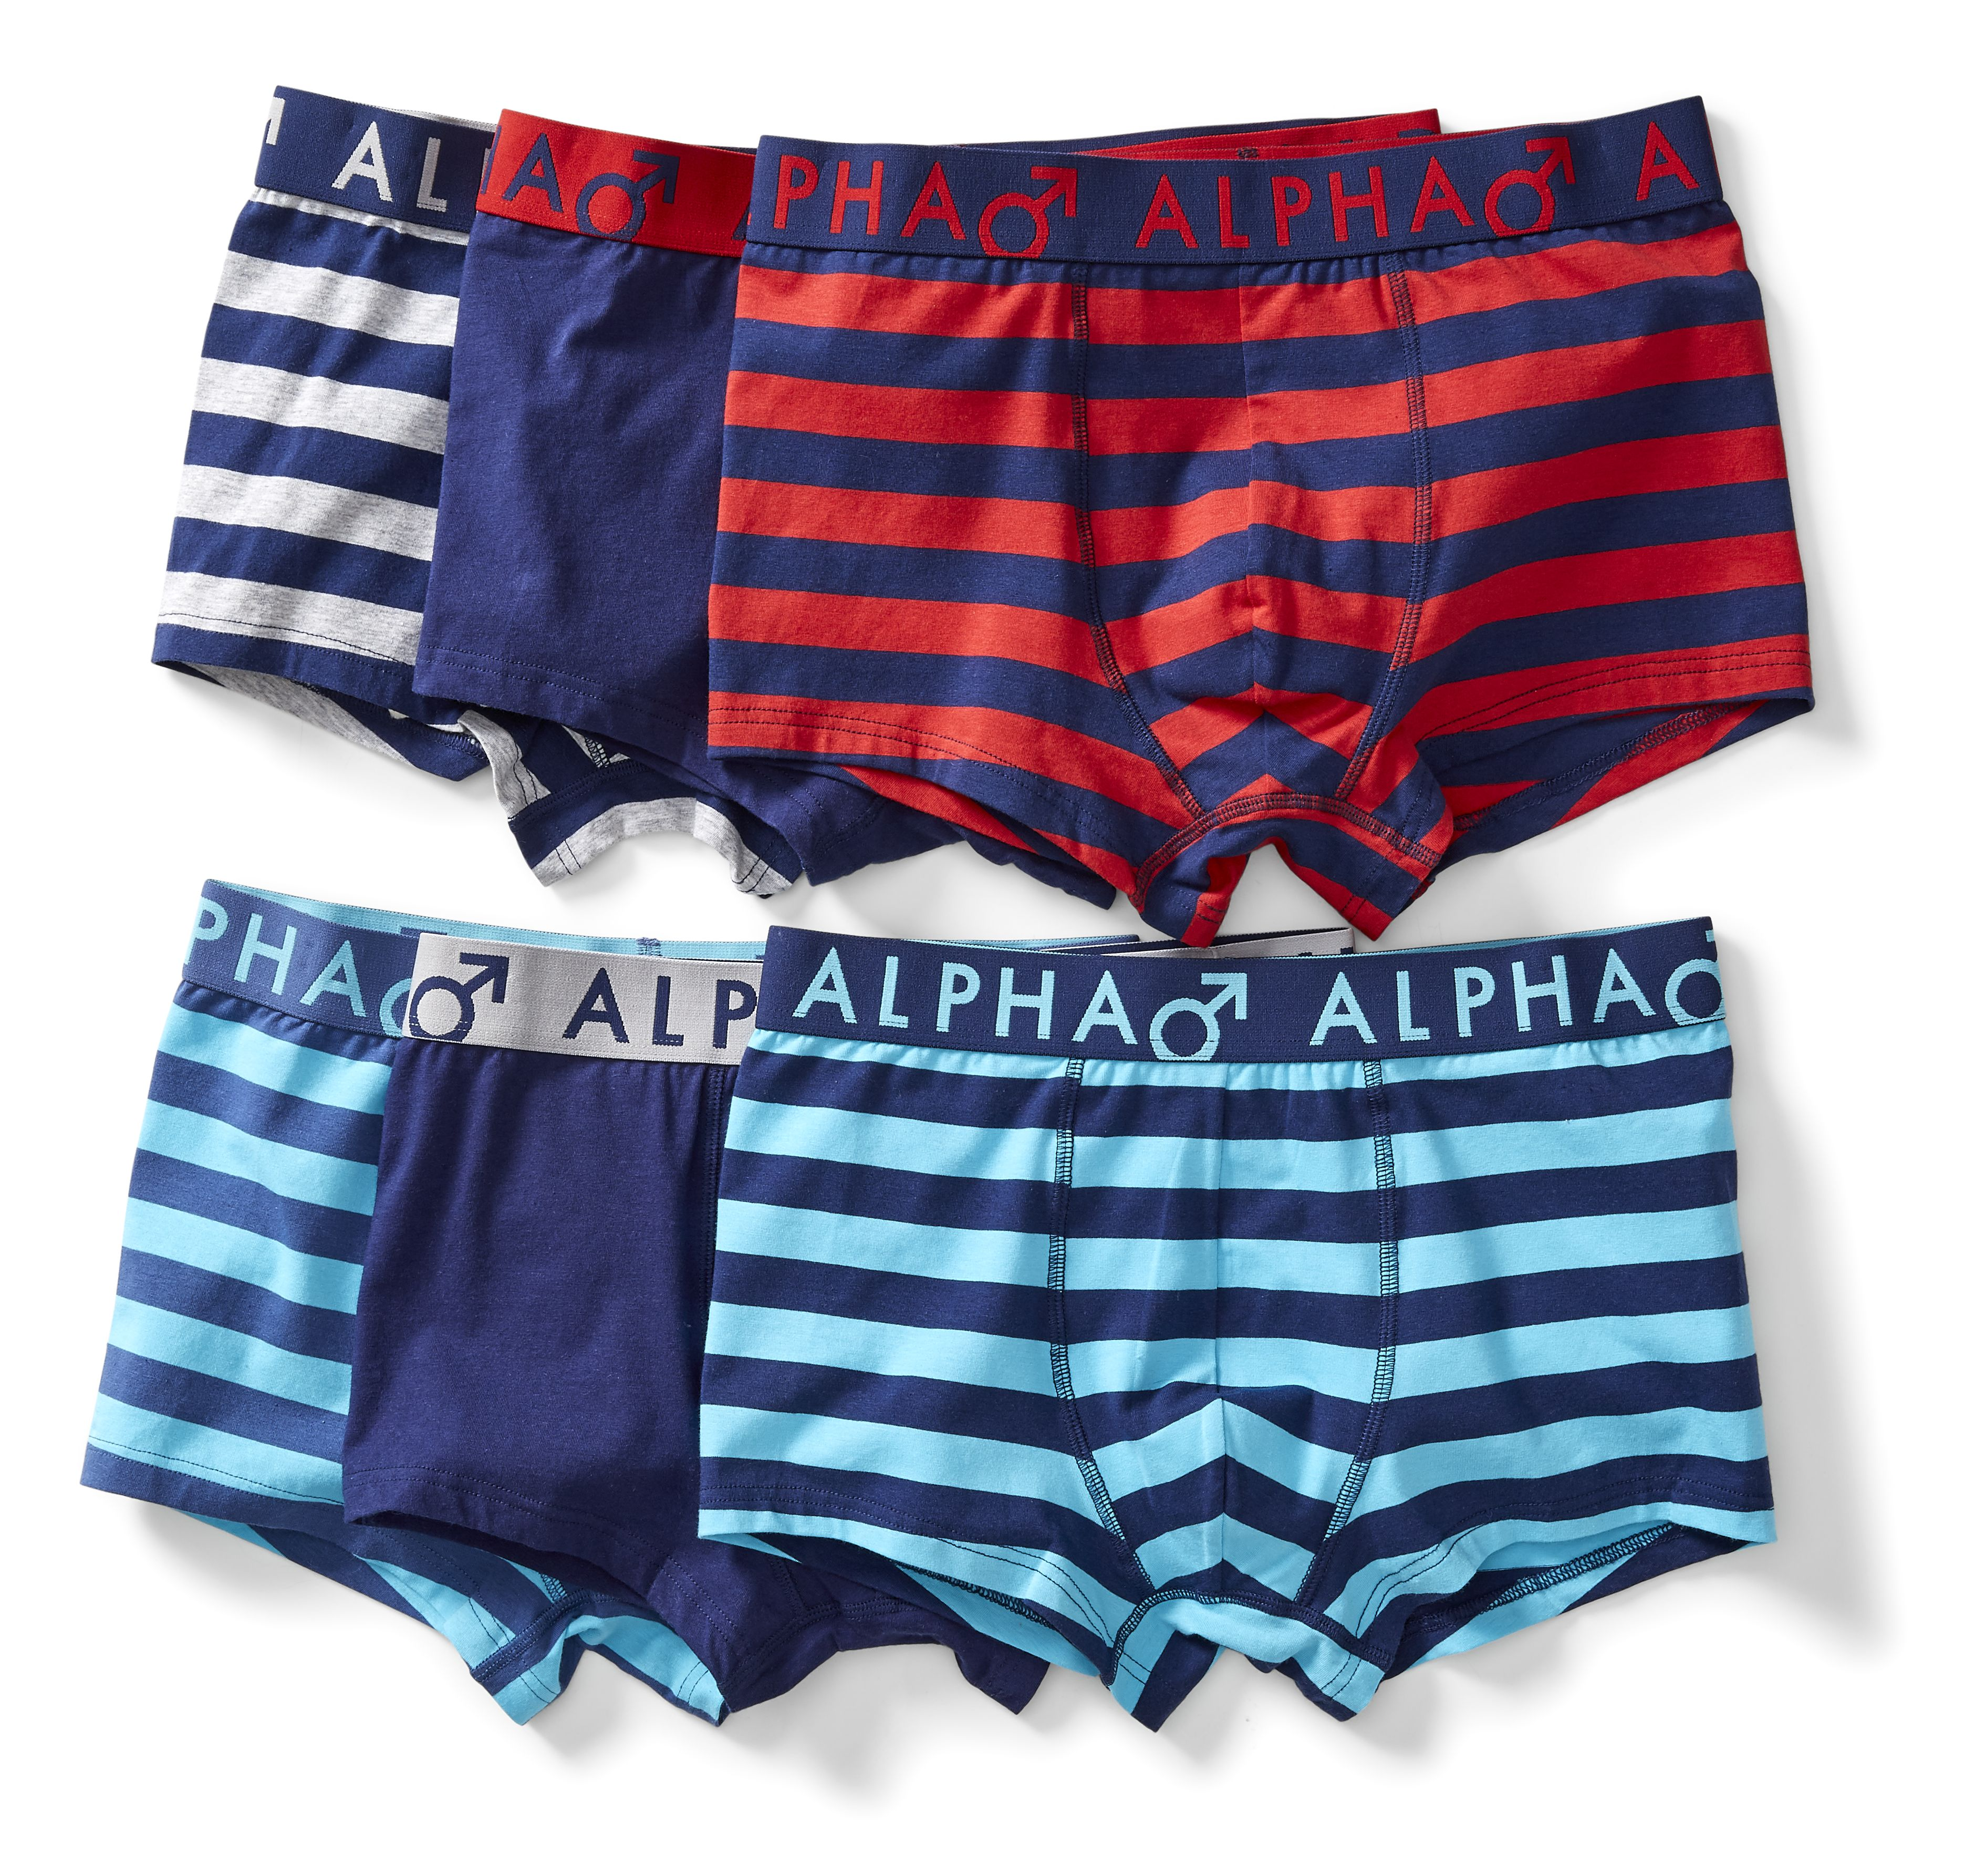 Kmart Men's 3pack Youth Stripe Trunk, sizes S-XXL, RRP$19.00